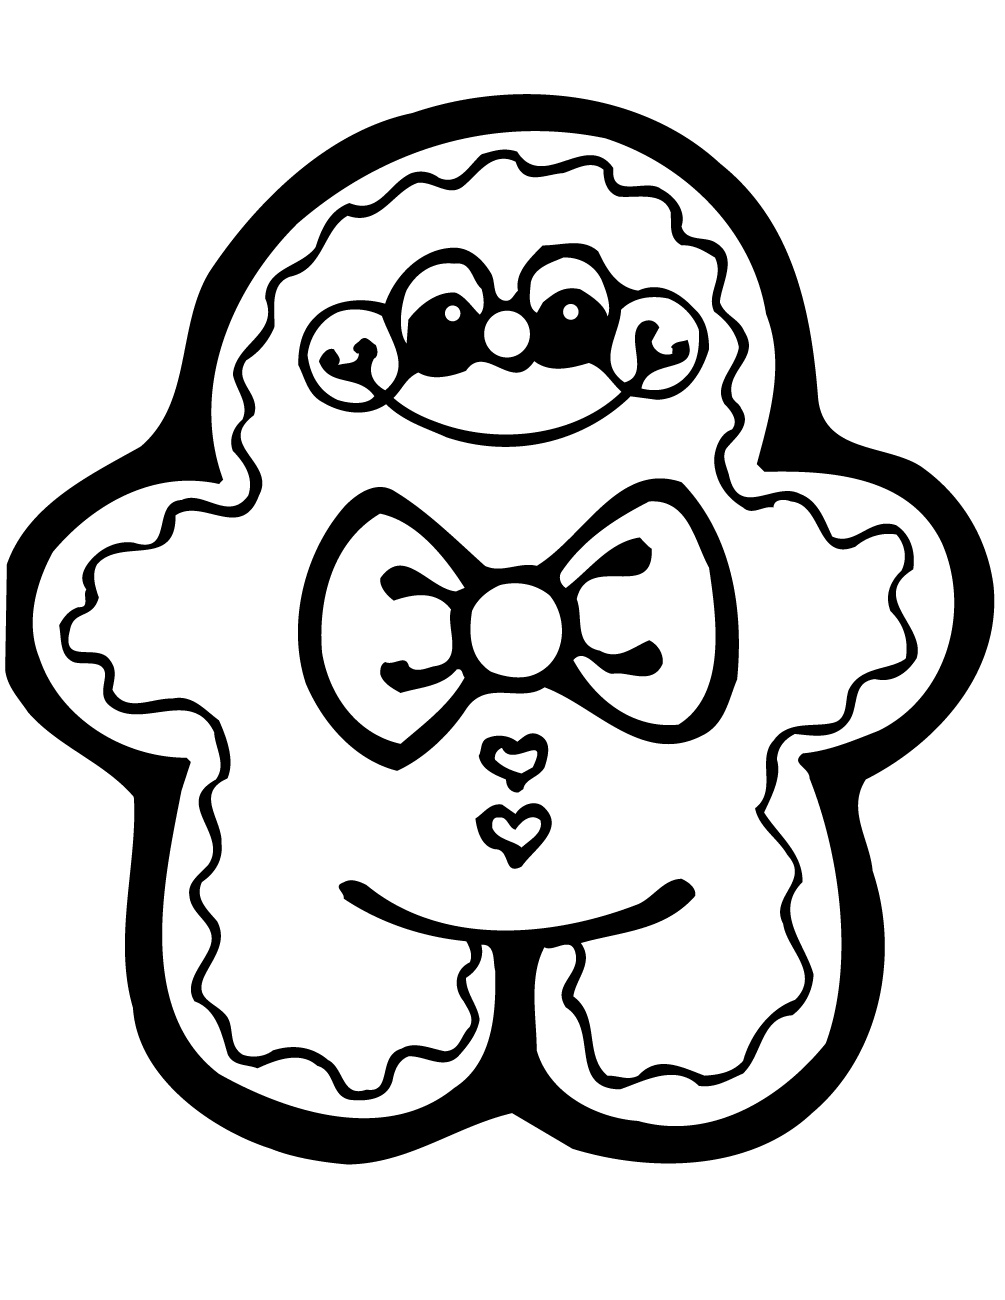 gingerbread man coloring pages printable cute gingerbread man coloring play free coloring game online printable man coloring gingerbread pages